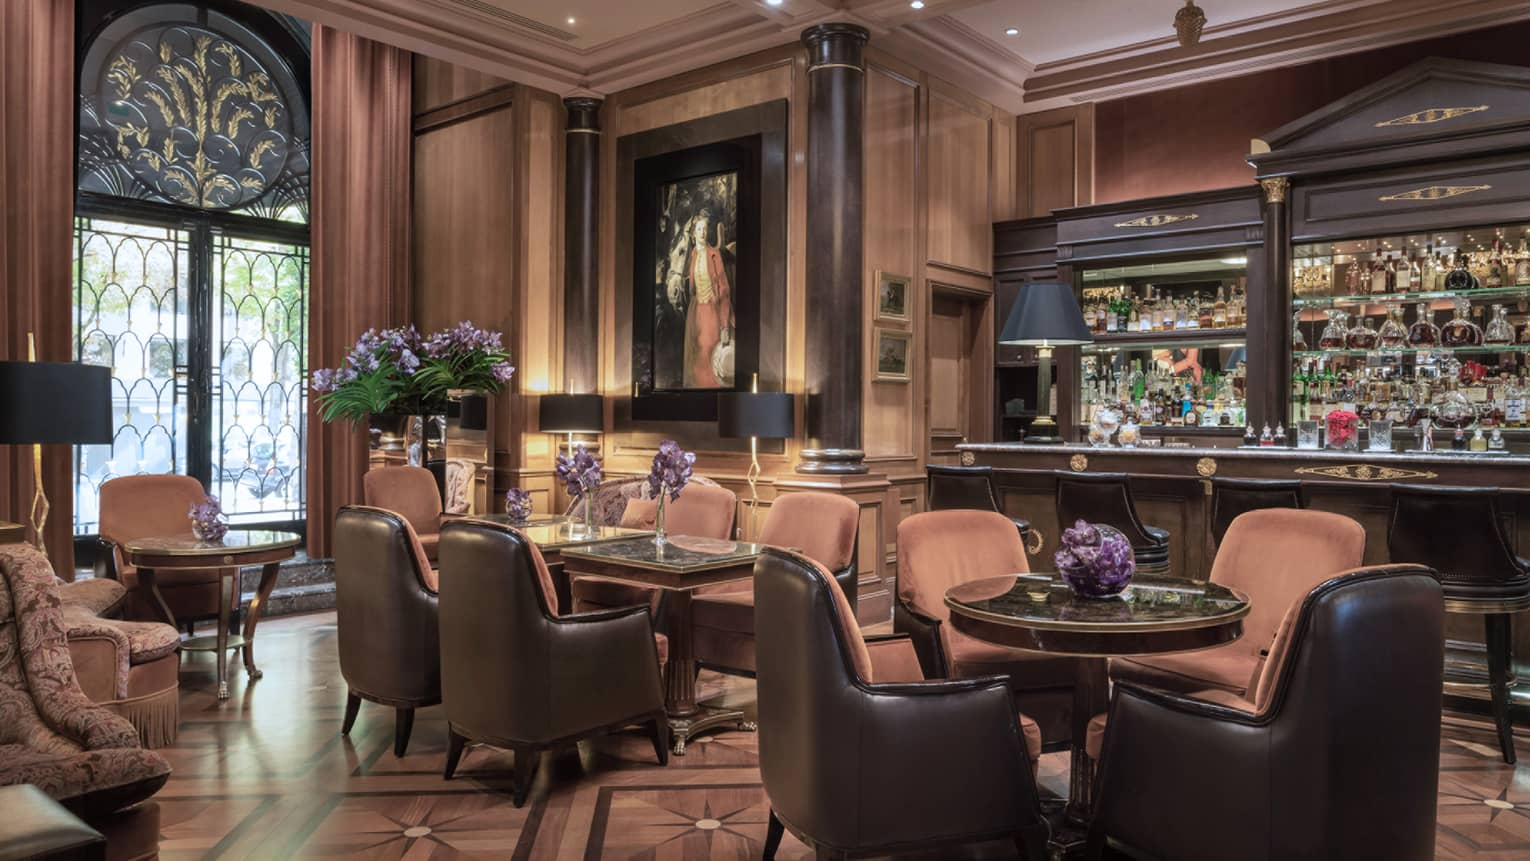 Bar with brown leather barstools and lounge area with rust-colored club-style seating, black lamps and purple flower arrangements